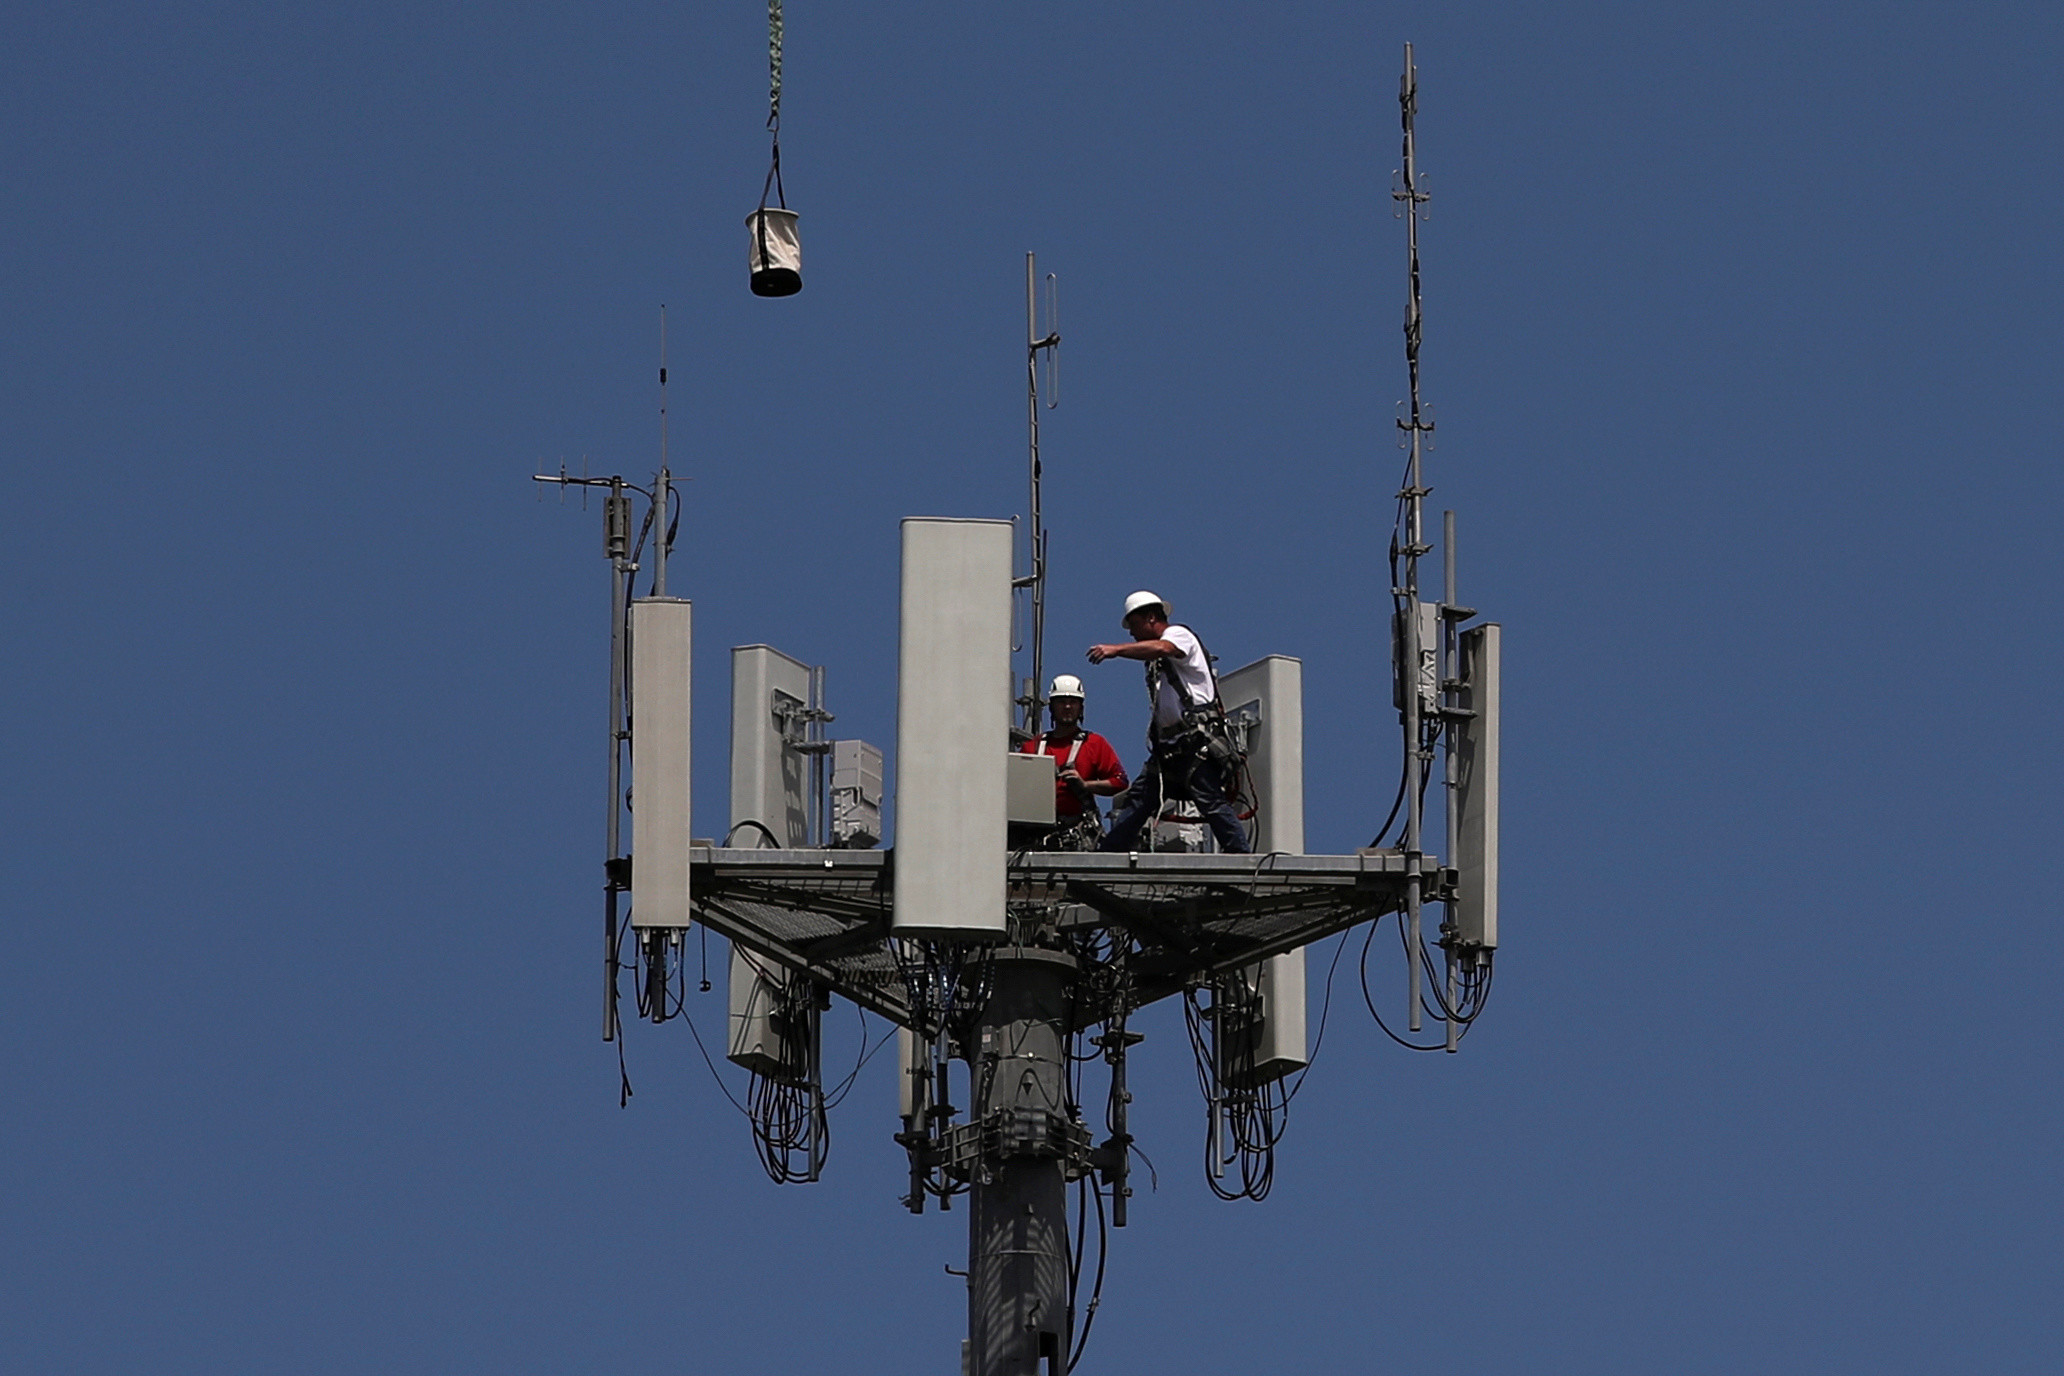 Workers install 5G telecommunications equipment on a T-Mobile US Inc tower in Seabrook, Texas, U.S. May 6, 2020.